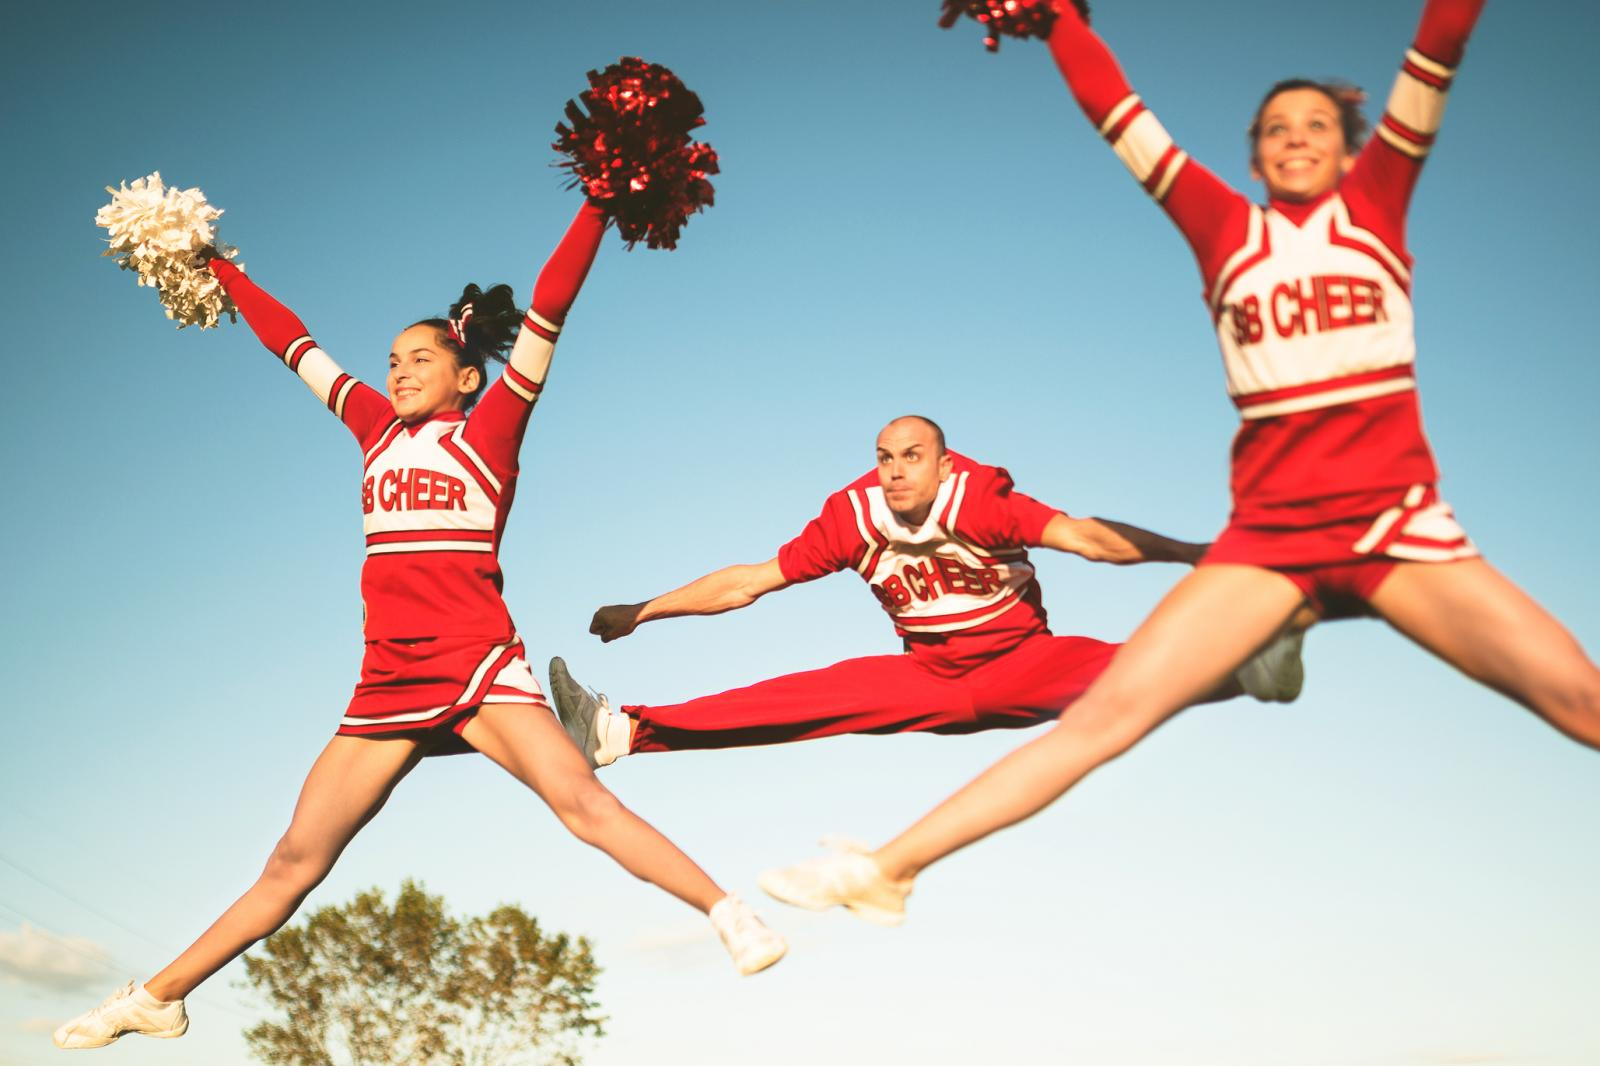 Cheerleaders jumping with pom-poms